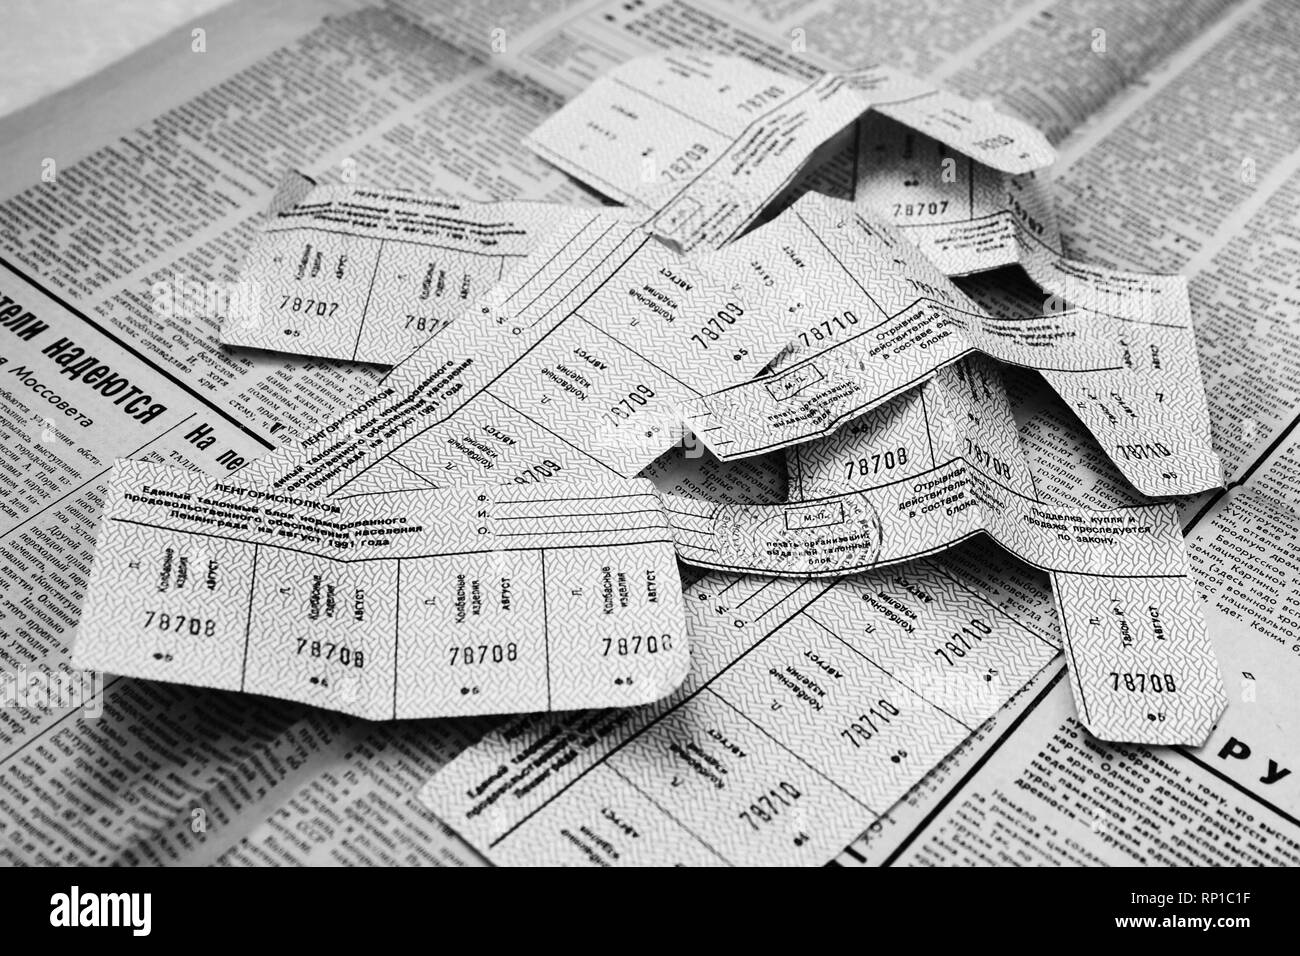 Food stamps for the buy sugar, sausage produce, vegetable oil on the national newspaper 'PRAVDA'1990  at the time of the economic crisis 1991 USSR - Stock Image